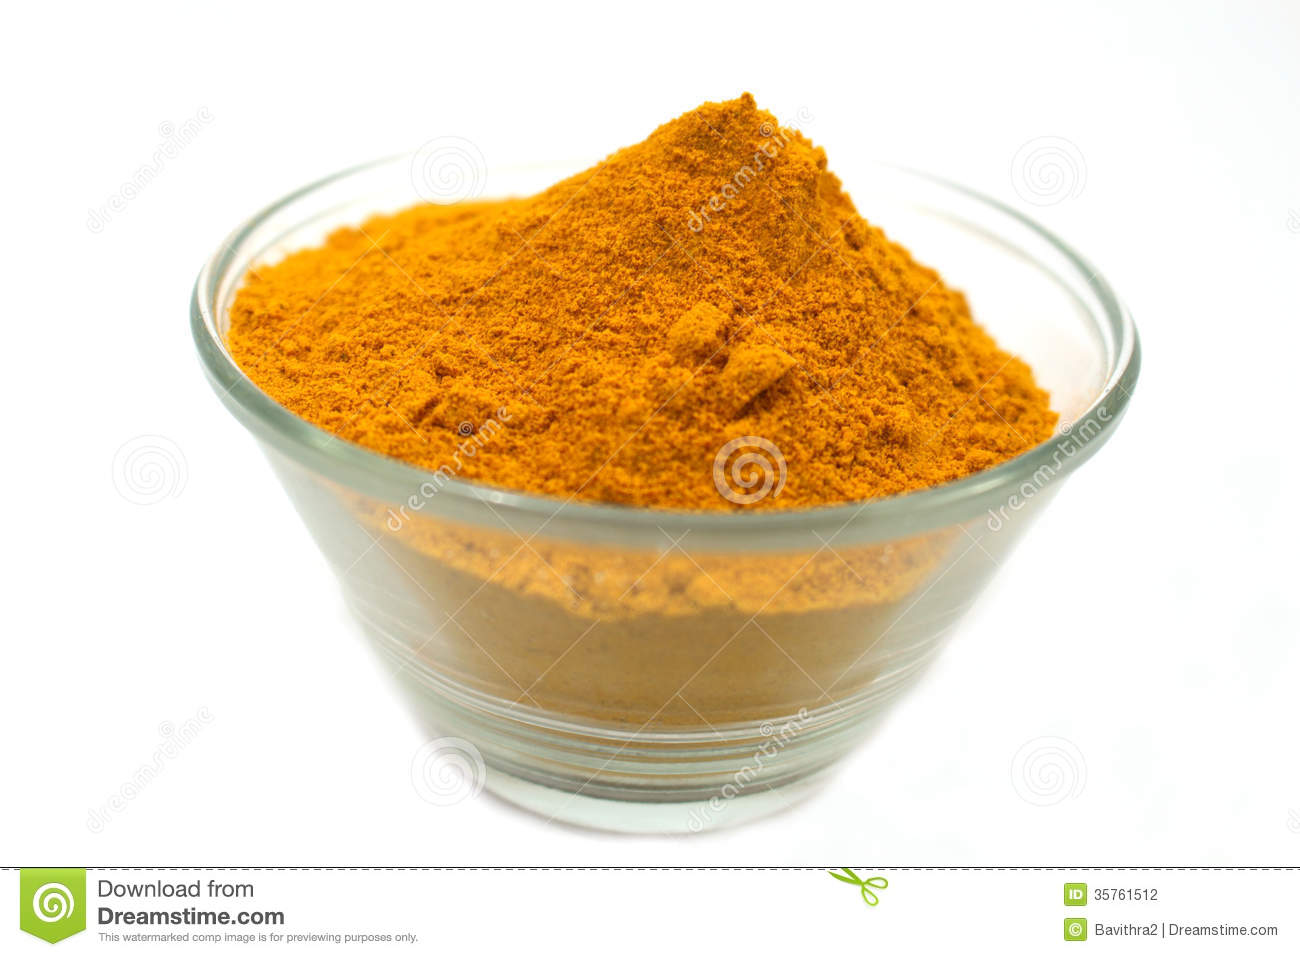 how to eat turmeric powder